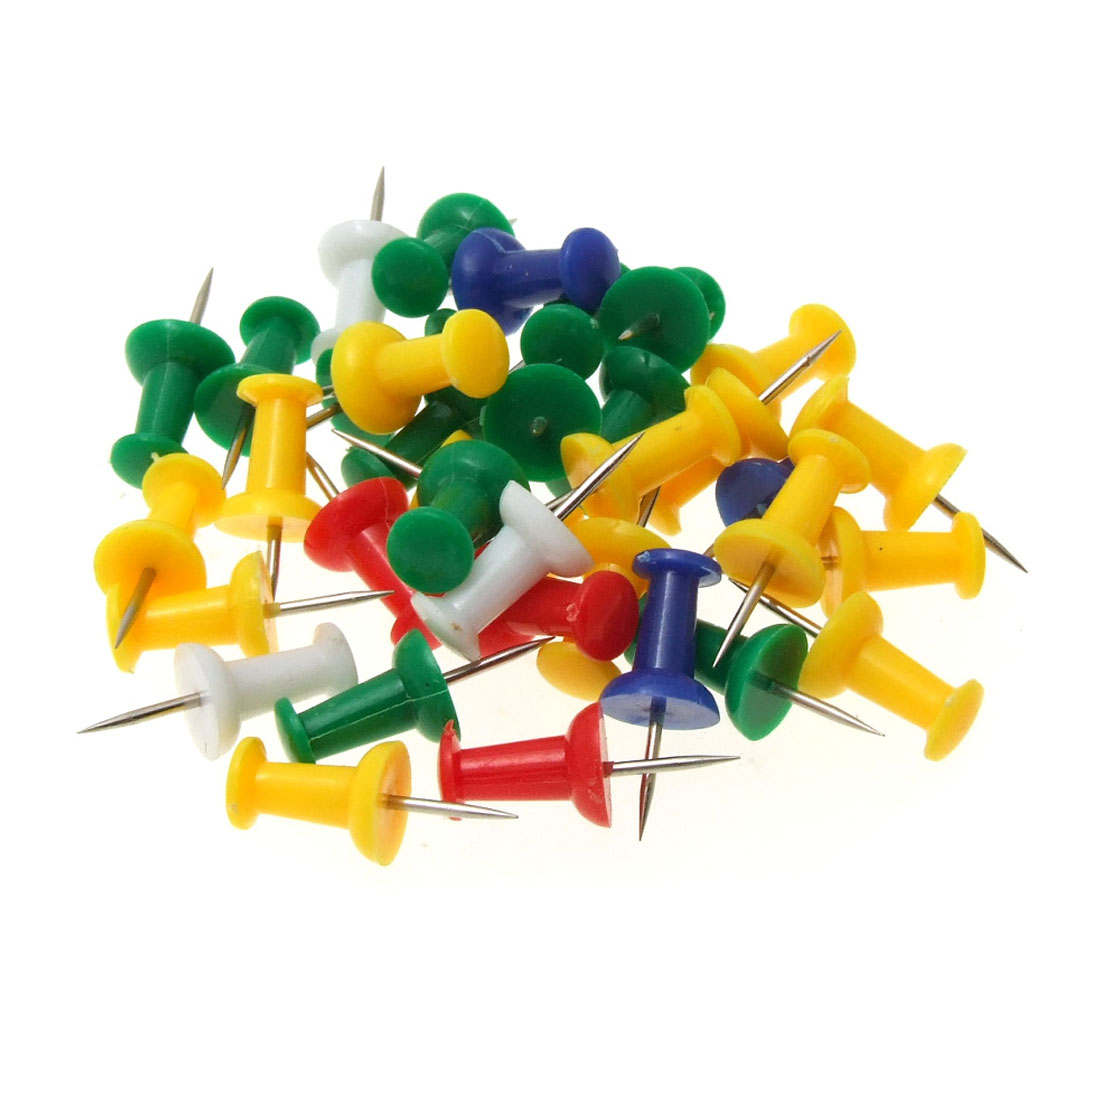 Unique Bargains New Plastic Heads Assorted Thumb Tack Push Pins 35PCS